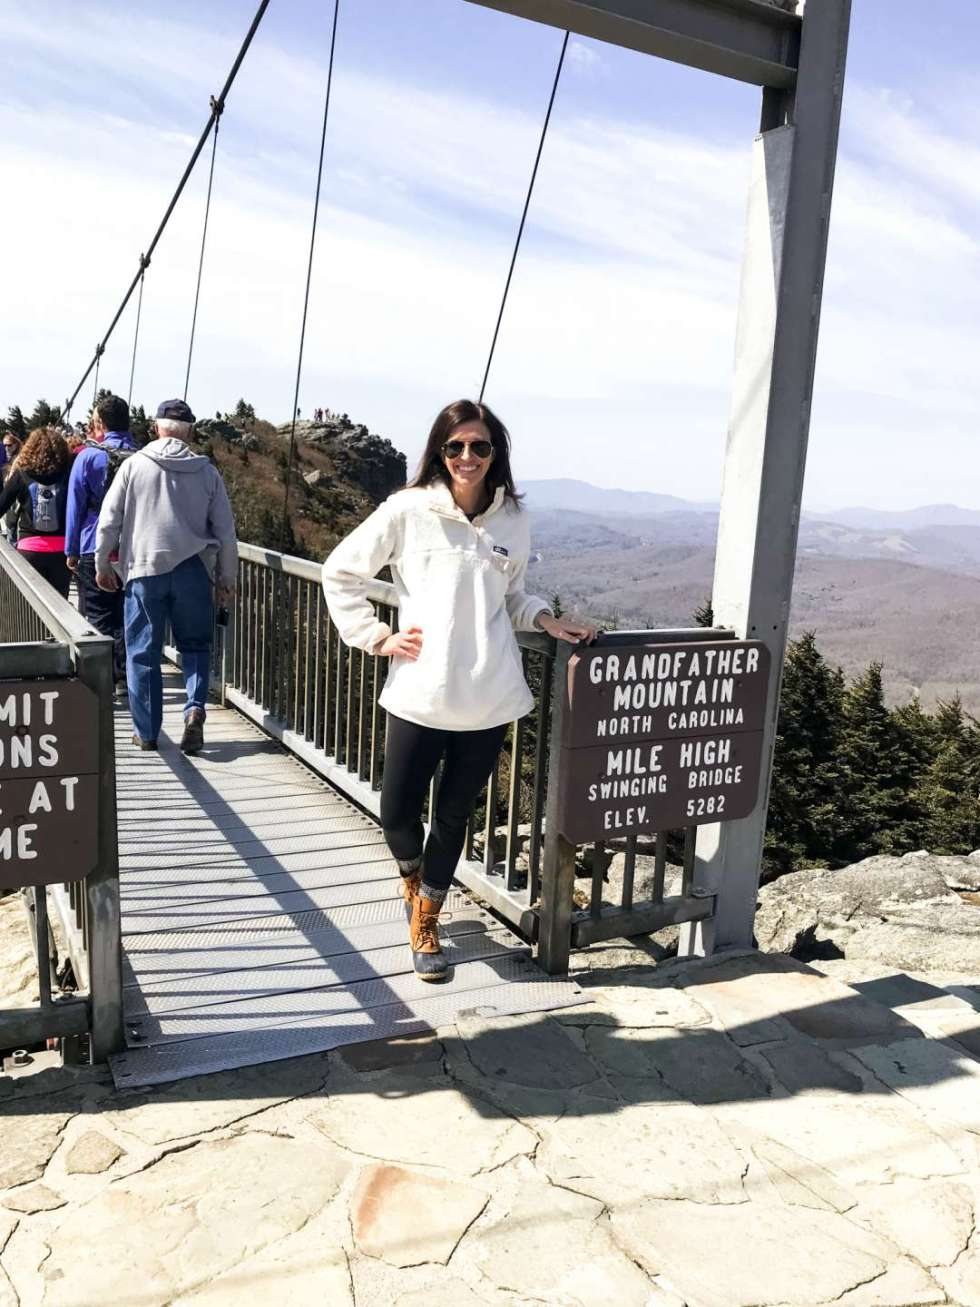 Local Love: 10 Best Places to Photograph in North Carolina - I'm Fixin' To - @mbg0112 | Best Places to Photography in North Carolina by popular N.C. lifestyle blog, I'm Fixin' To: image of a woman at the Mile High Bridge at Grandfather Mountain.